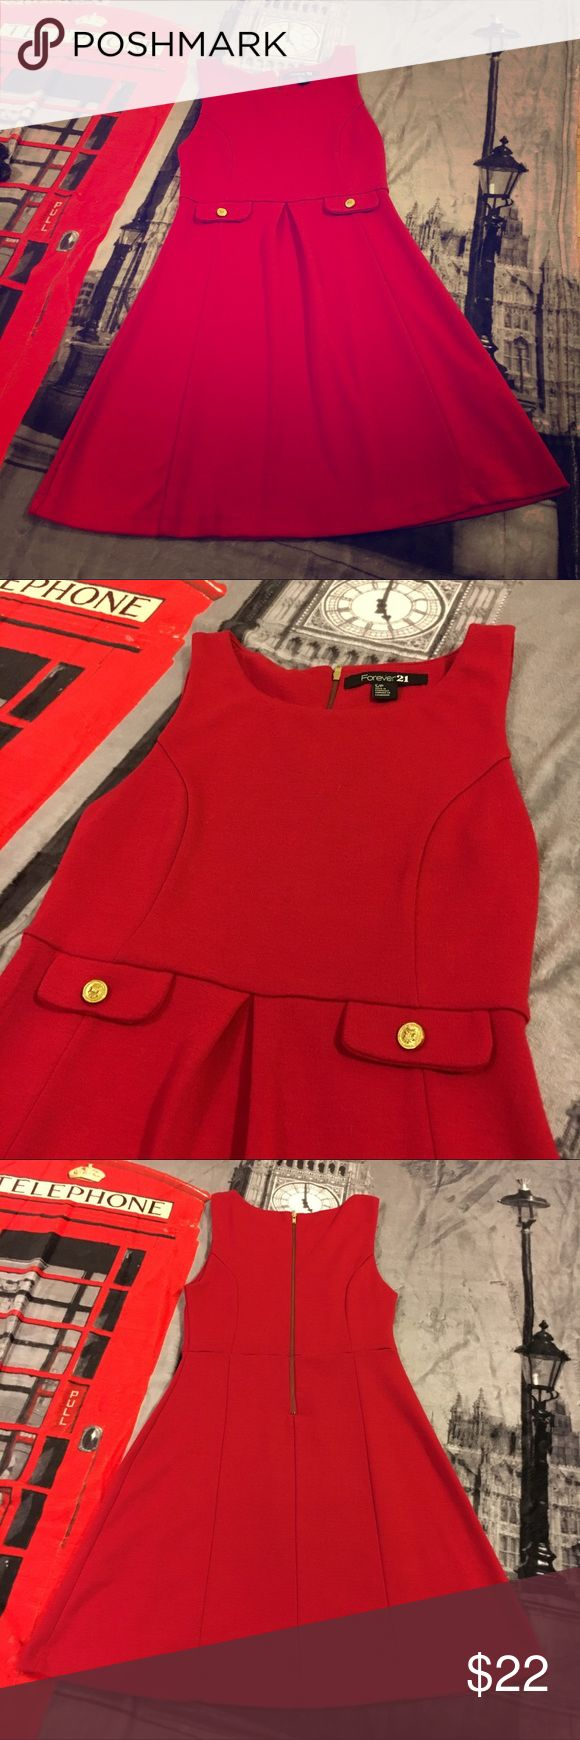 Little Red dress vintage style 1960's Excellent condition, no flaws- Classic short red tank dress with fitted bodice & soft flair/front pleat skirt. Gold button & exposed back zipper detail. Forever 21 Dresses